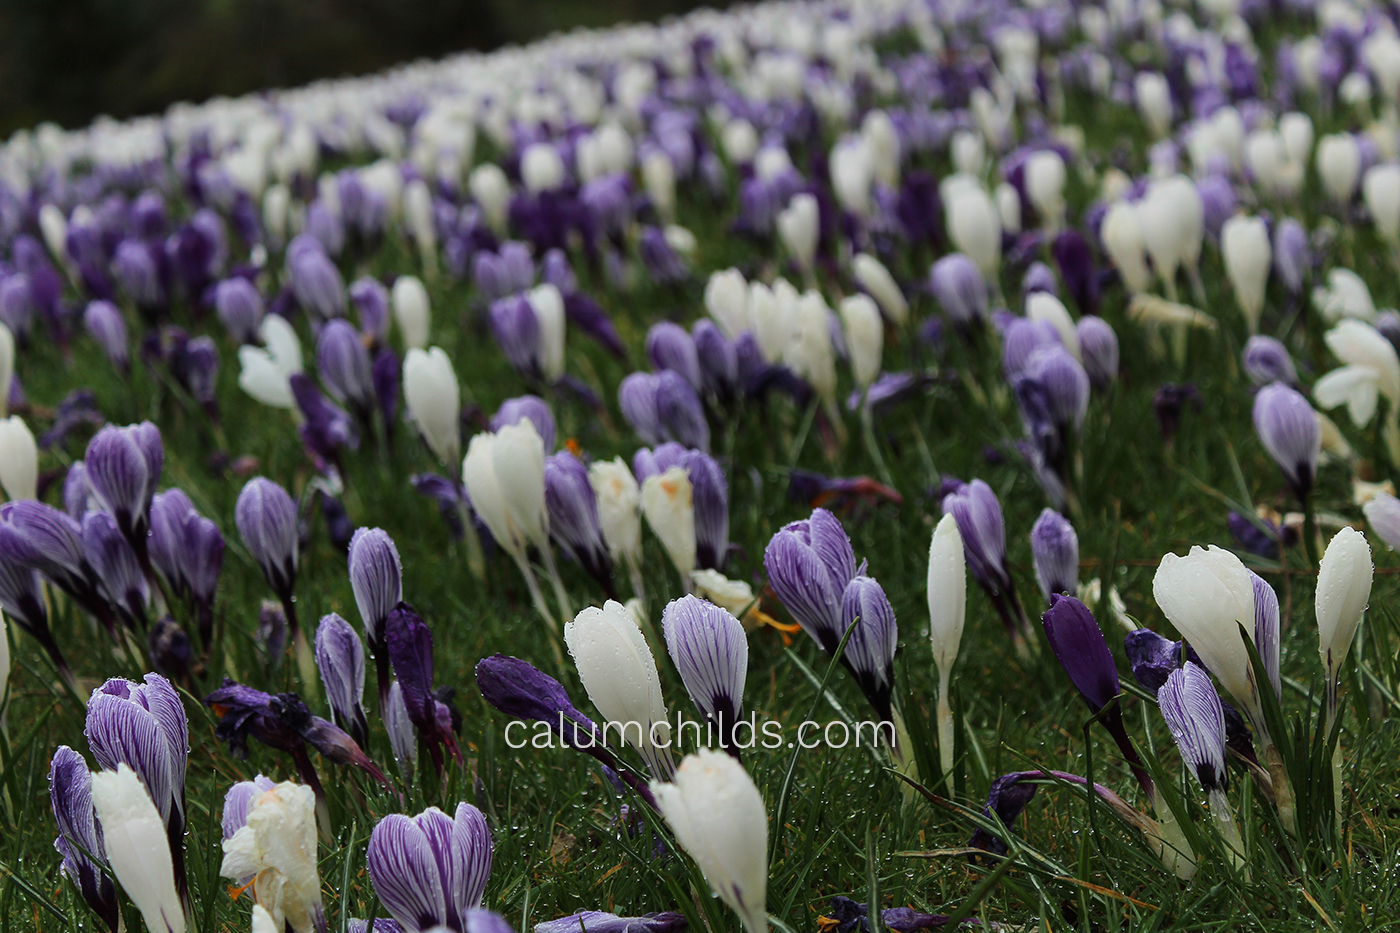 Purple and white crocuses grow on the grass.